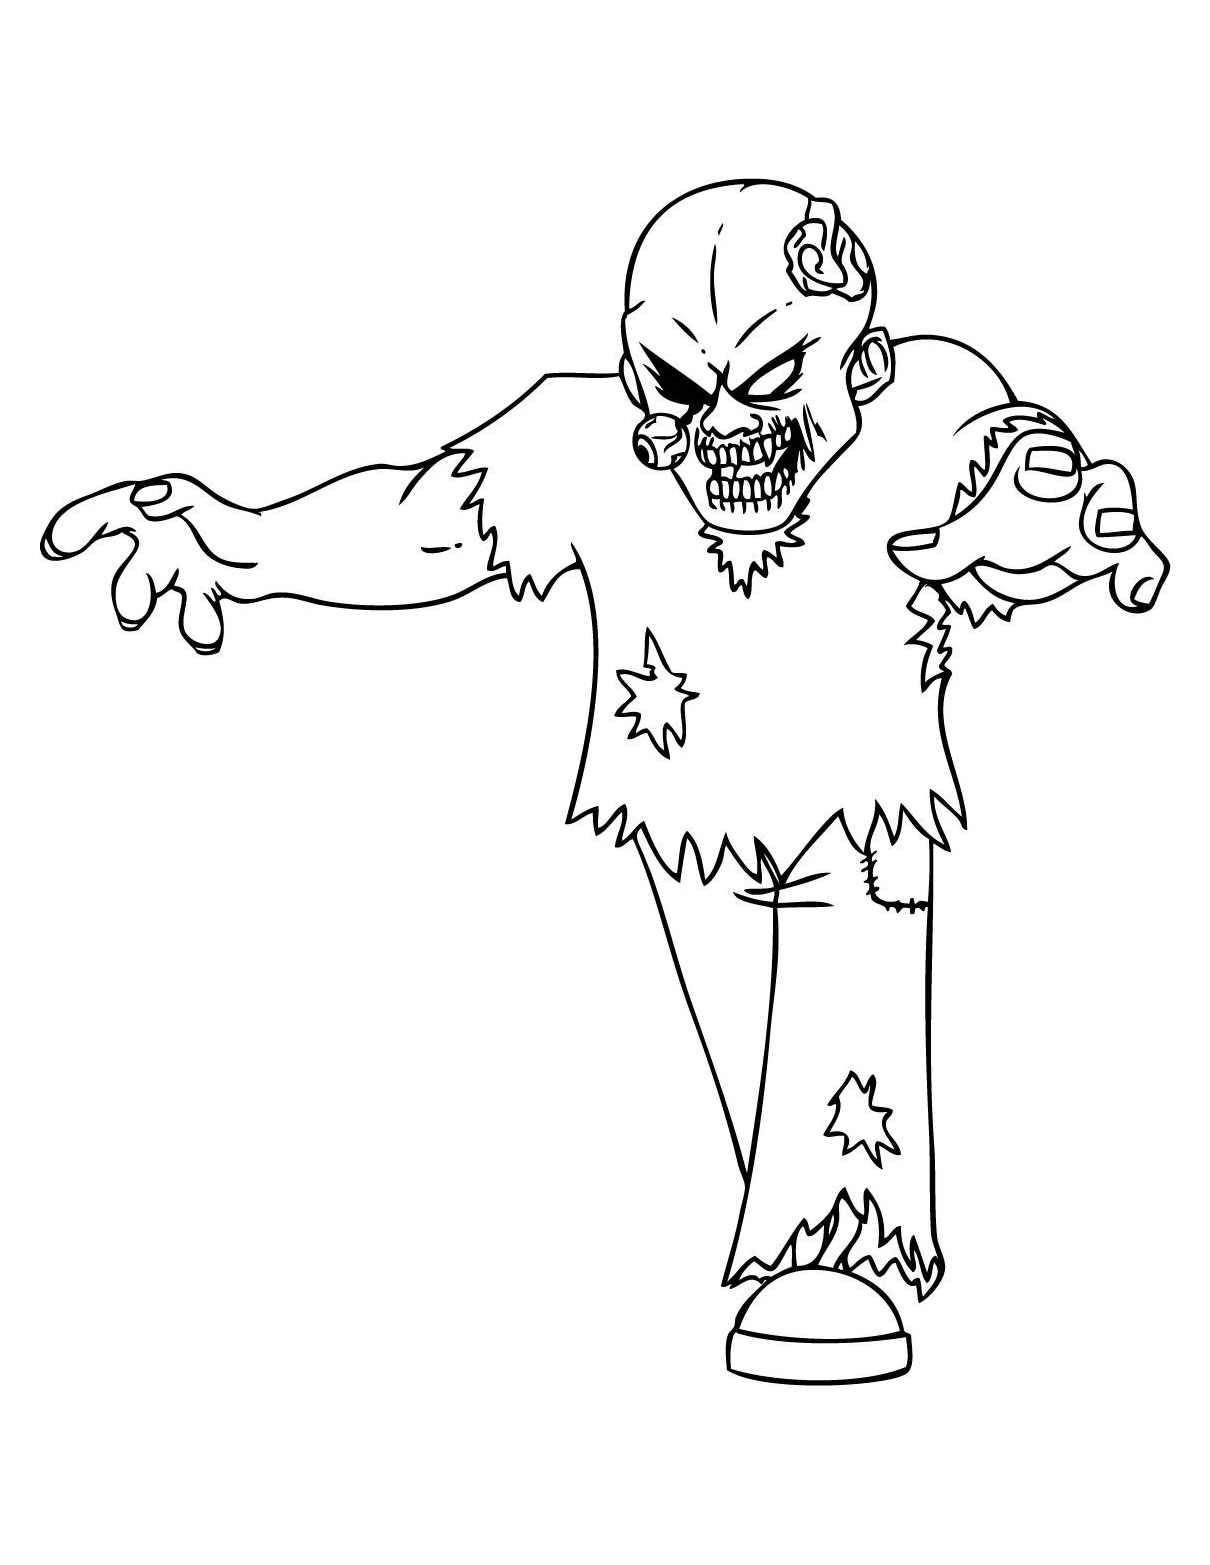 Simple zombies coloring page to print and color for free